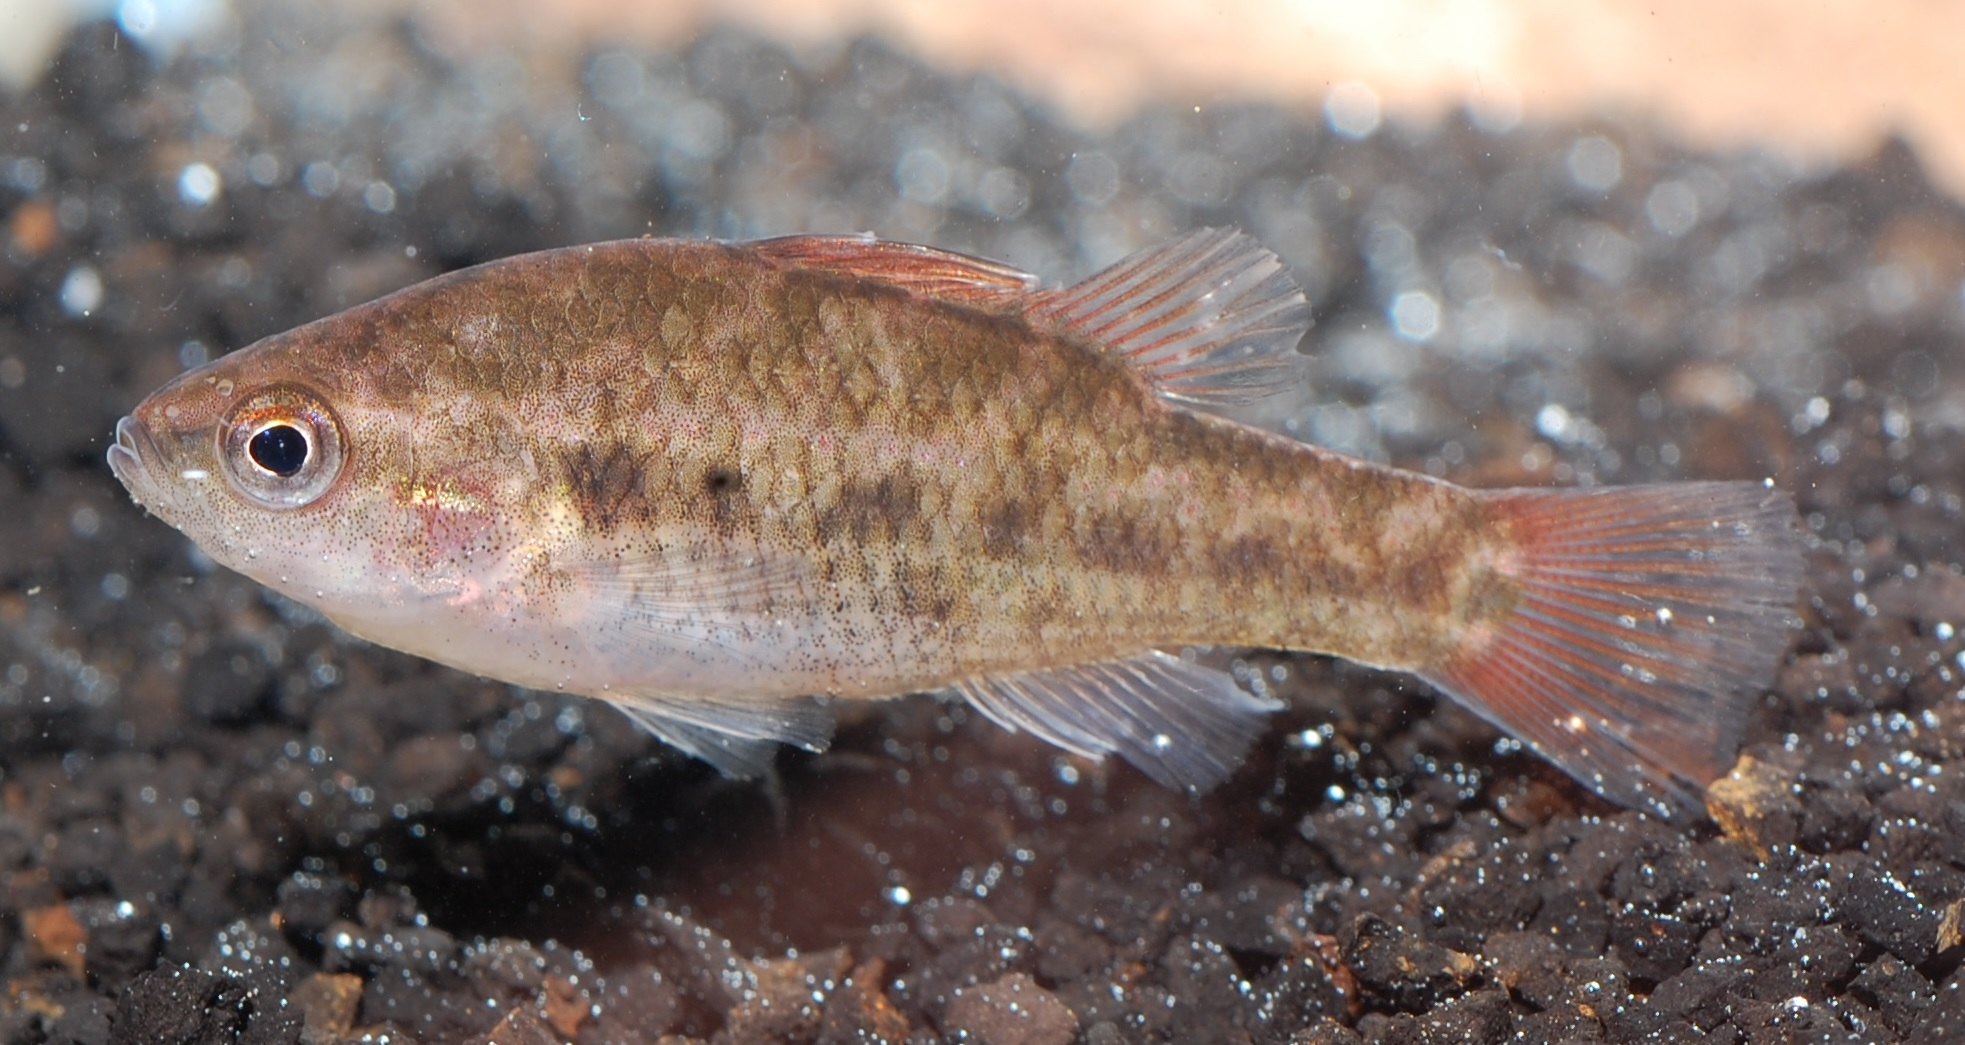 Freshwater juvenile fish - New Populations Of Endangered Fresh Water Fish Found